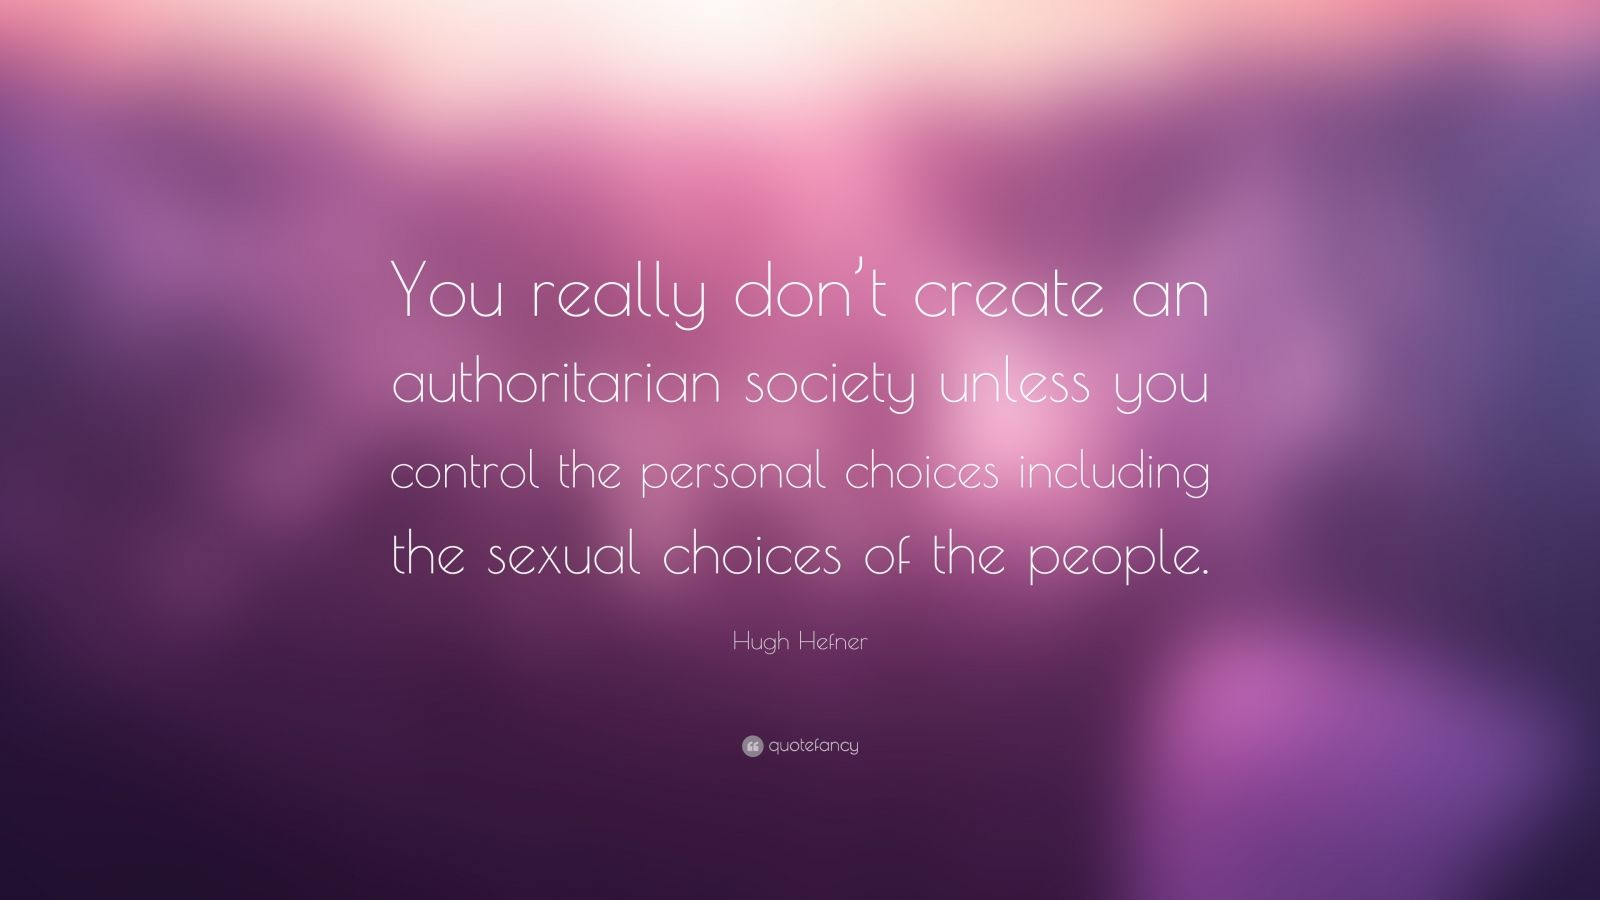 """Hugh Hefner Quote: """"You really don't create an authoritarian society unless you control the personal choices including the sexual choices of the people."""""""